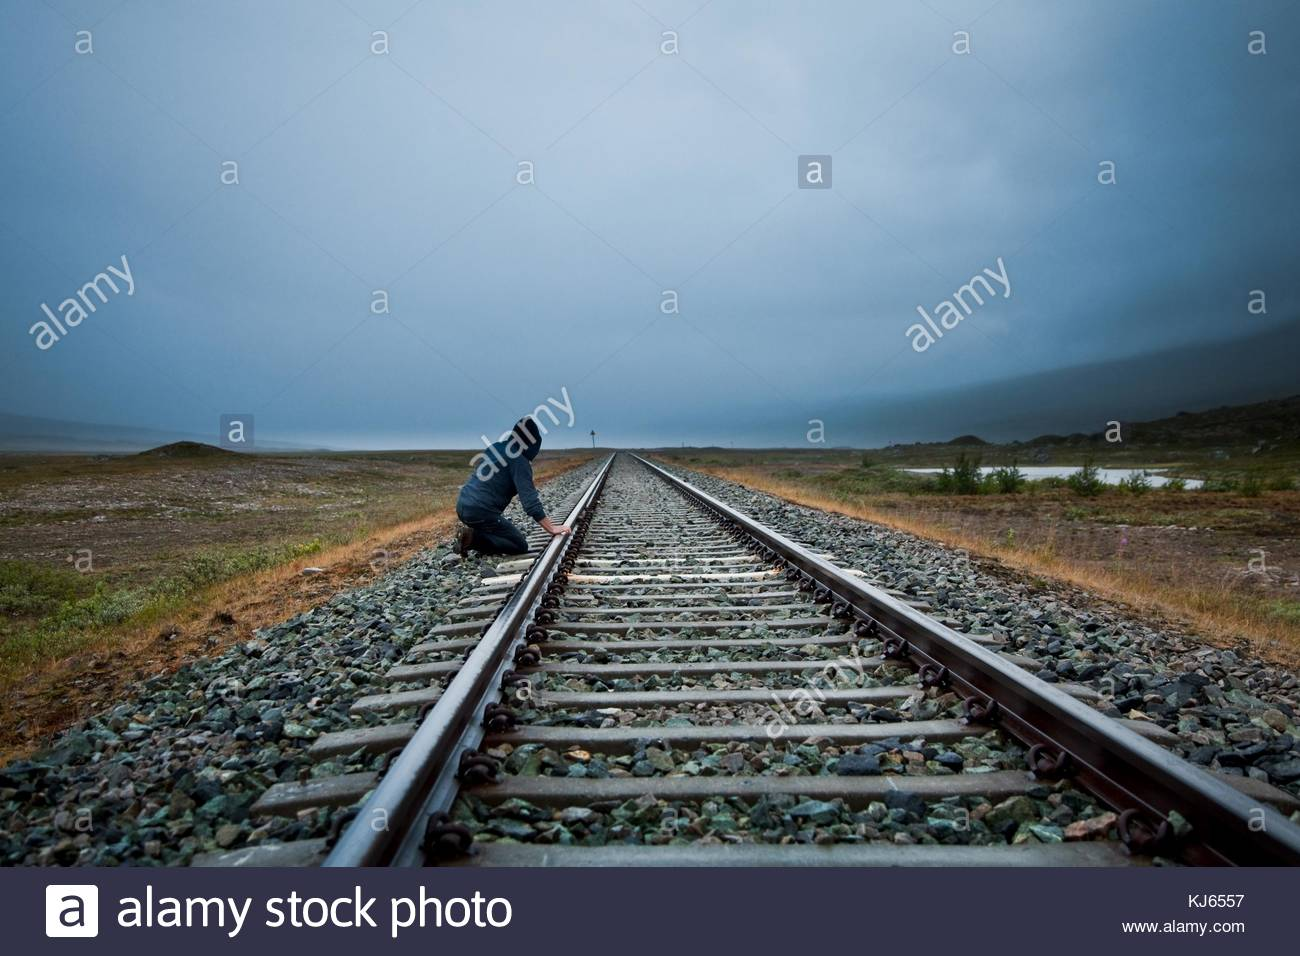 person beside rail track - Stock Image